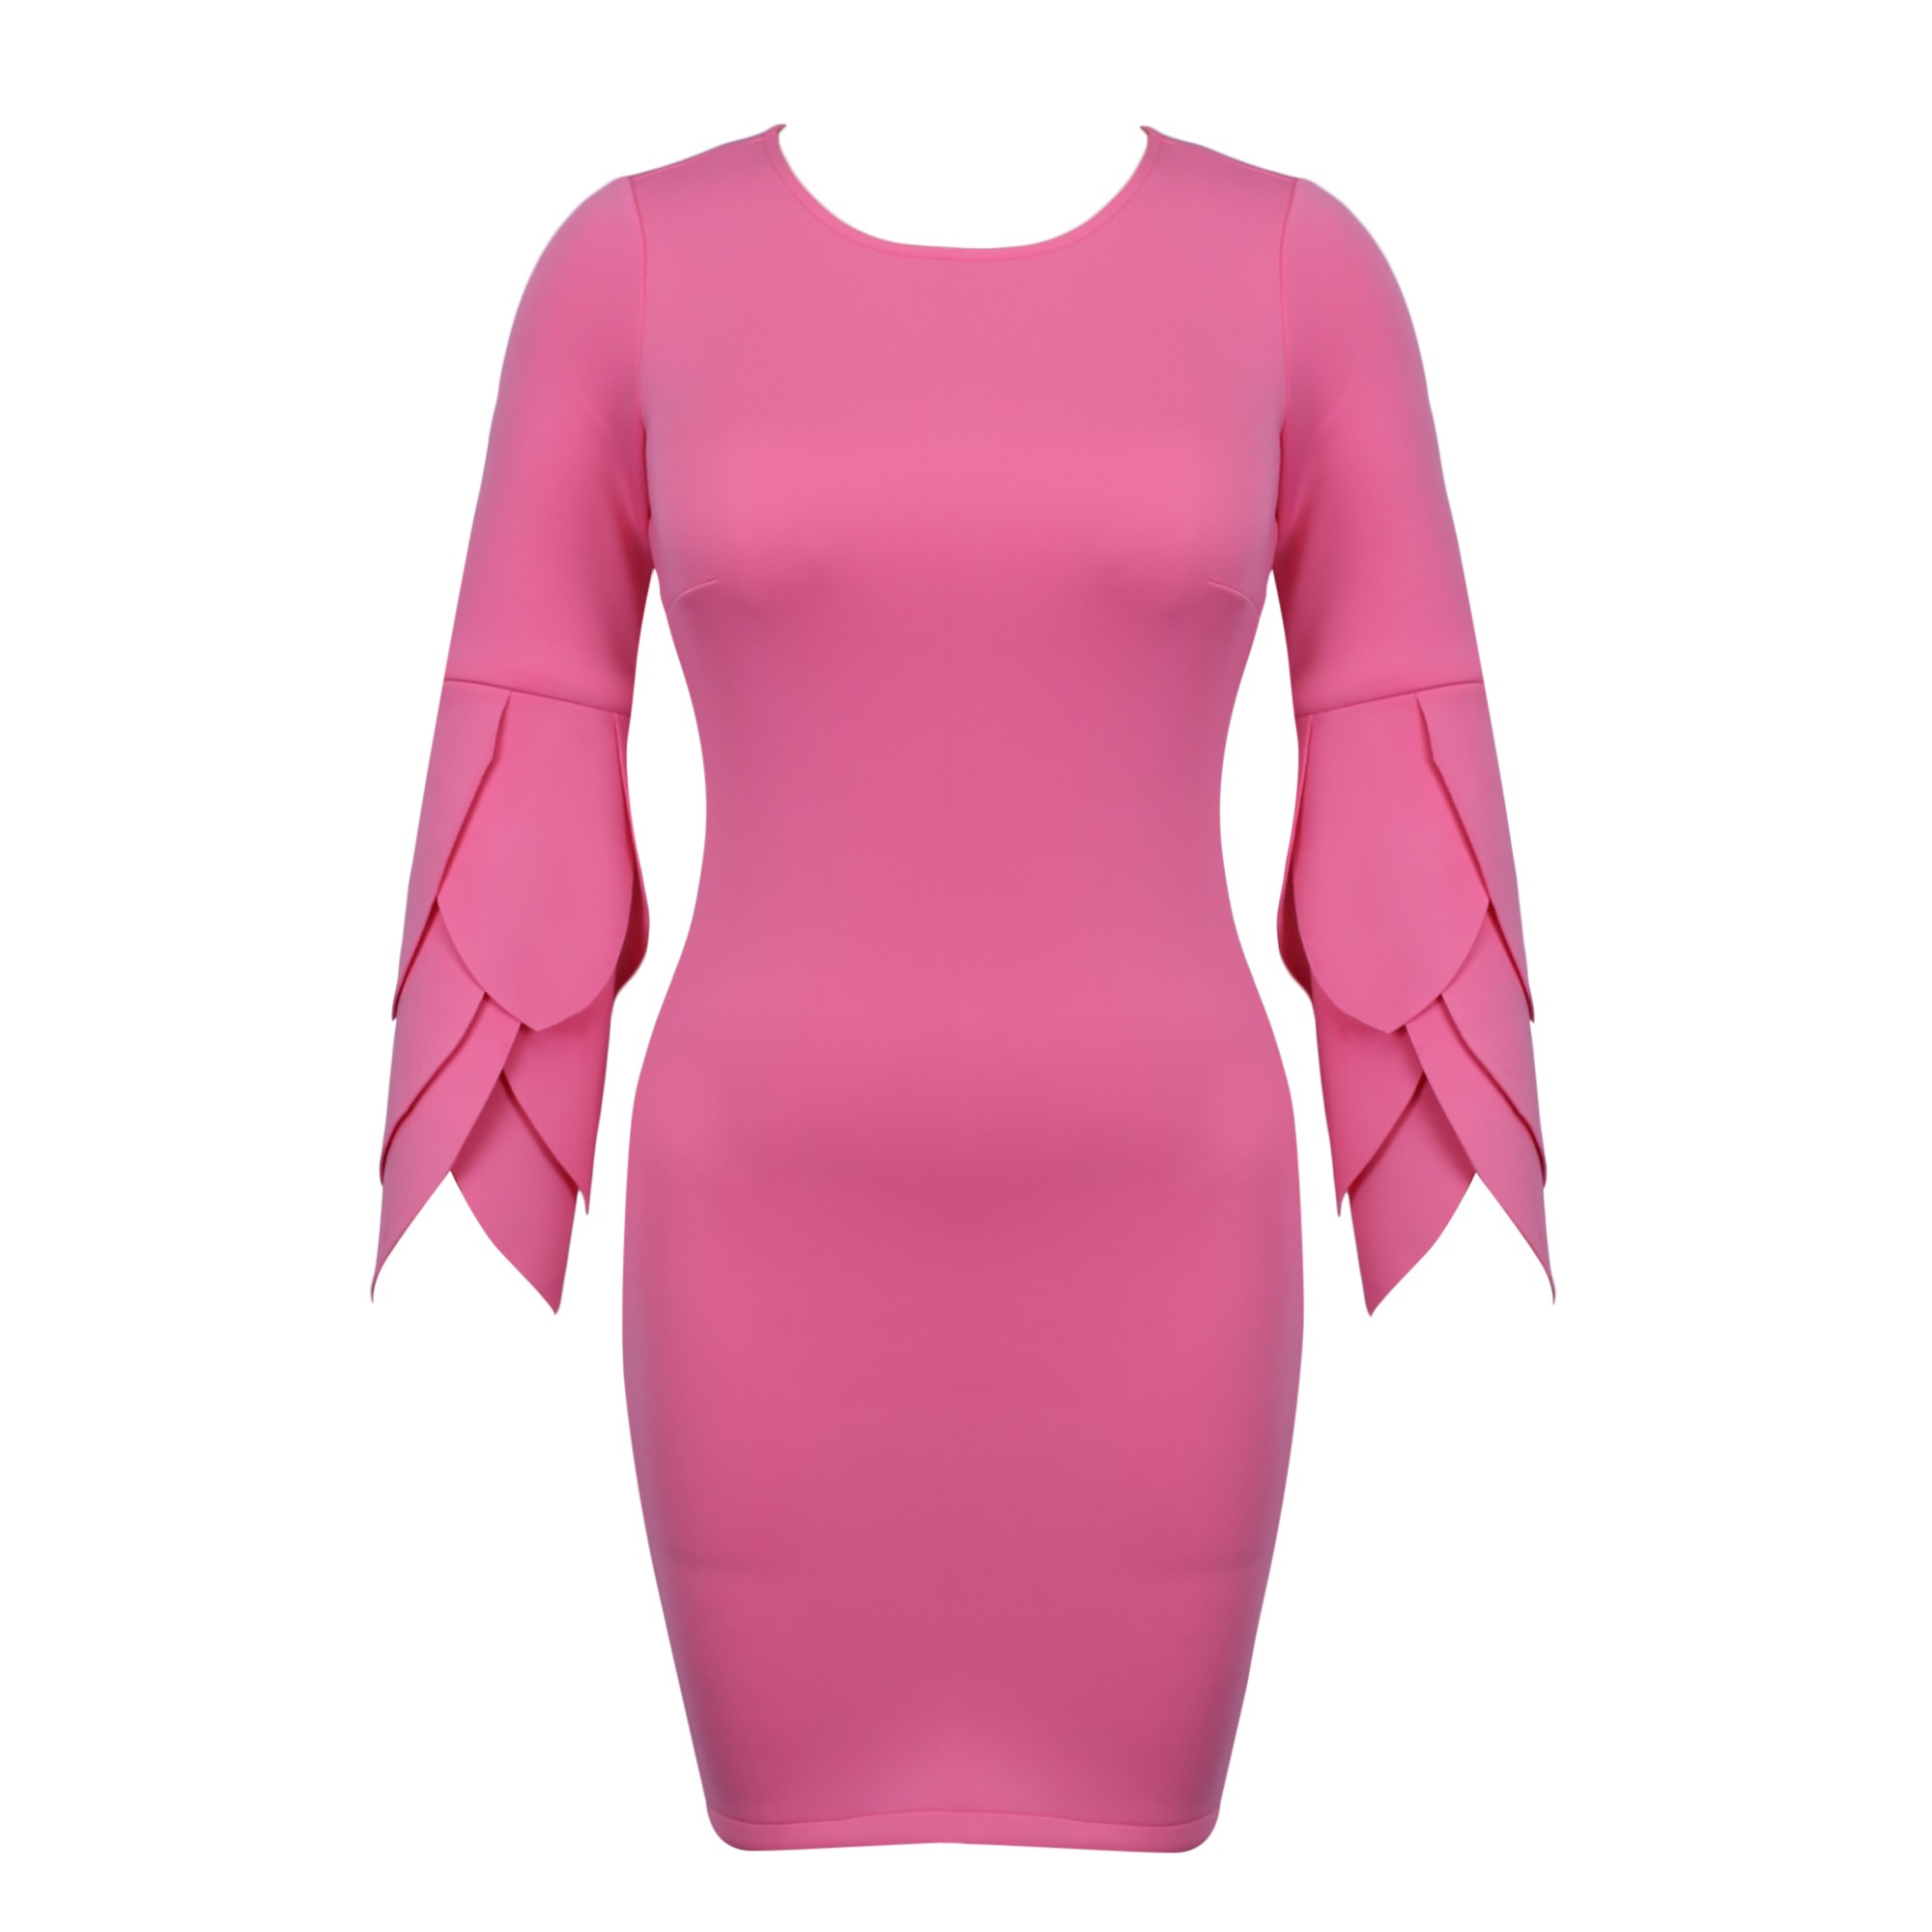 Rayon - Pink Round Neck Long Sleeve Knee Length Scolloped Sleeves Memory Foam Exaggerated Bodycon Dress HJ511-Pink